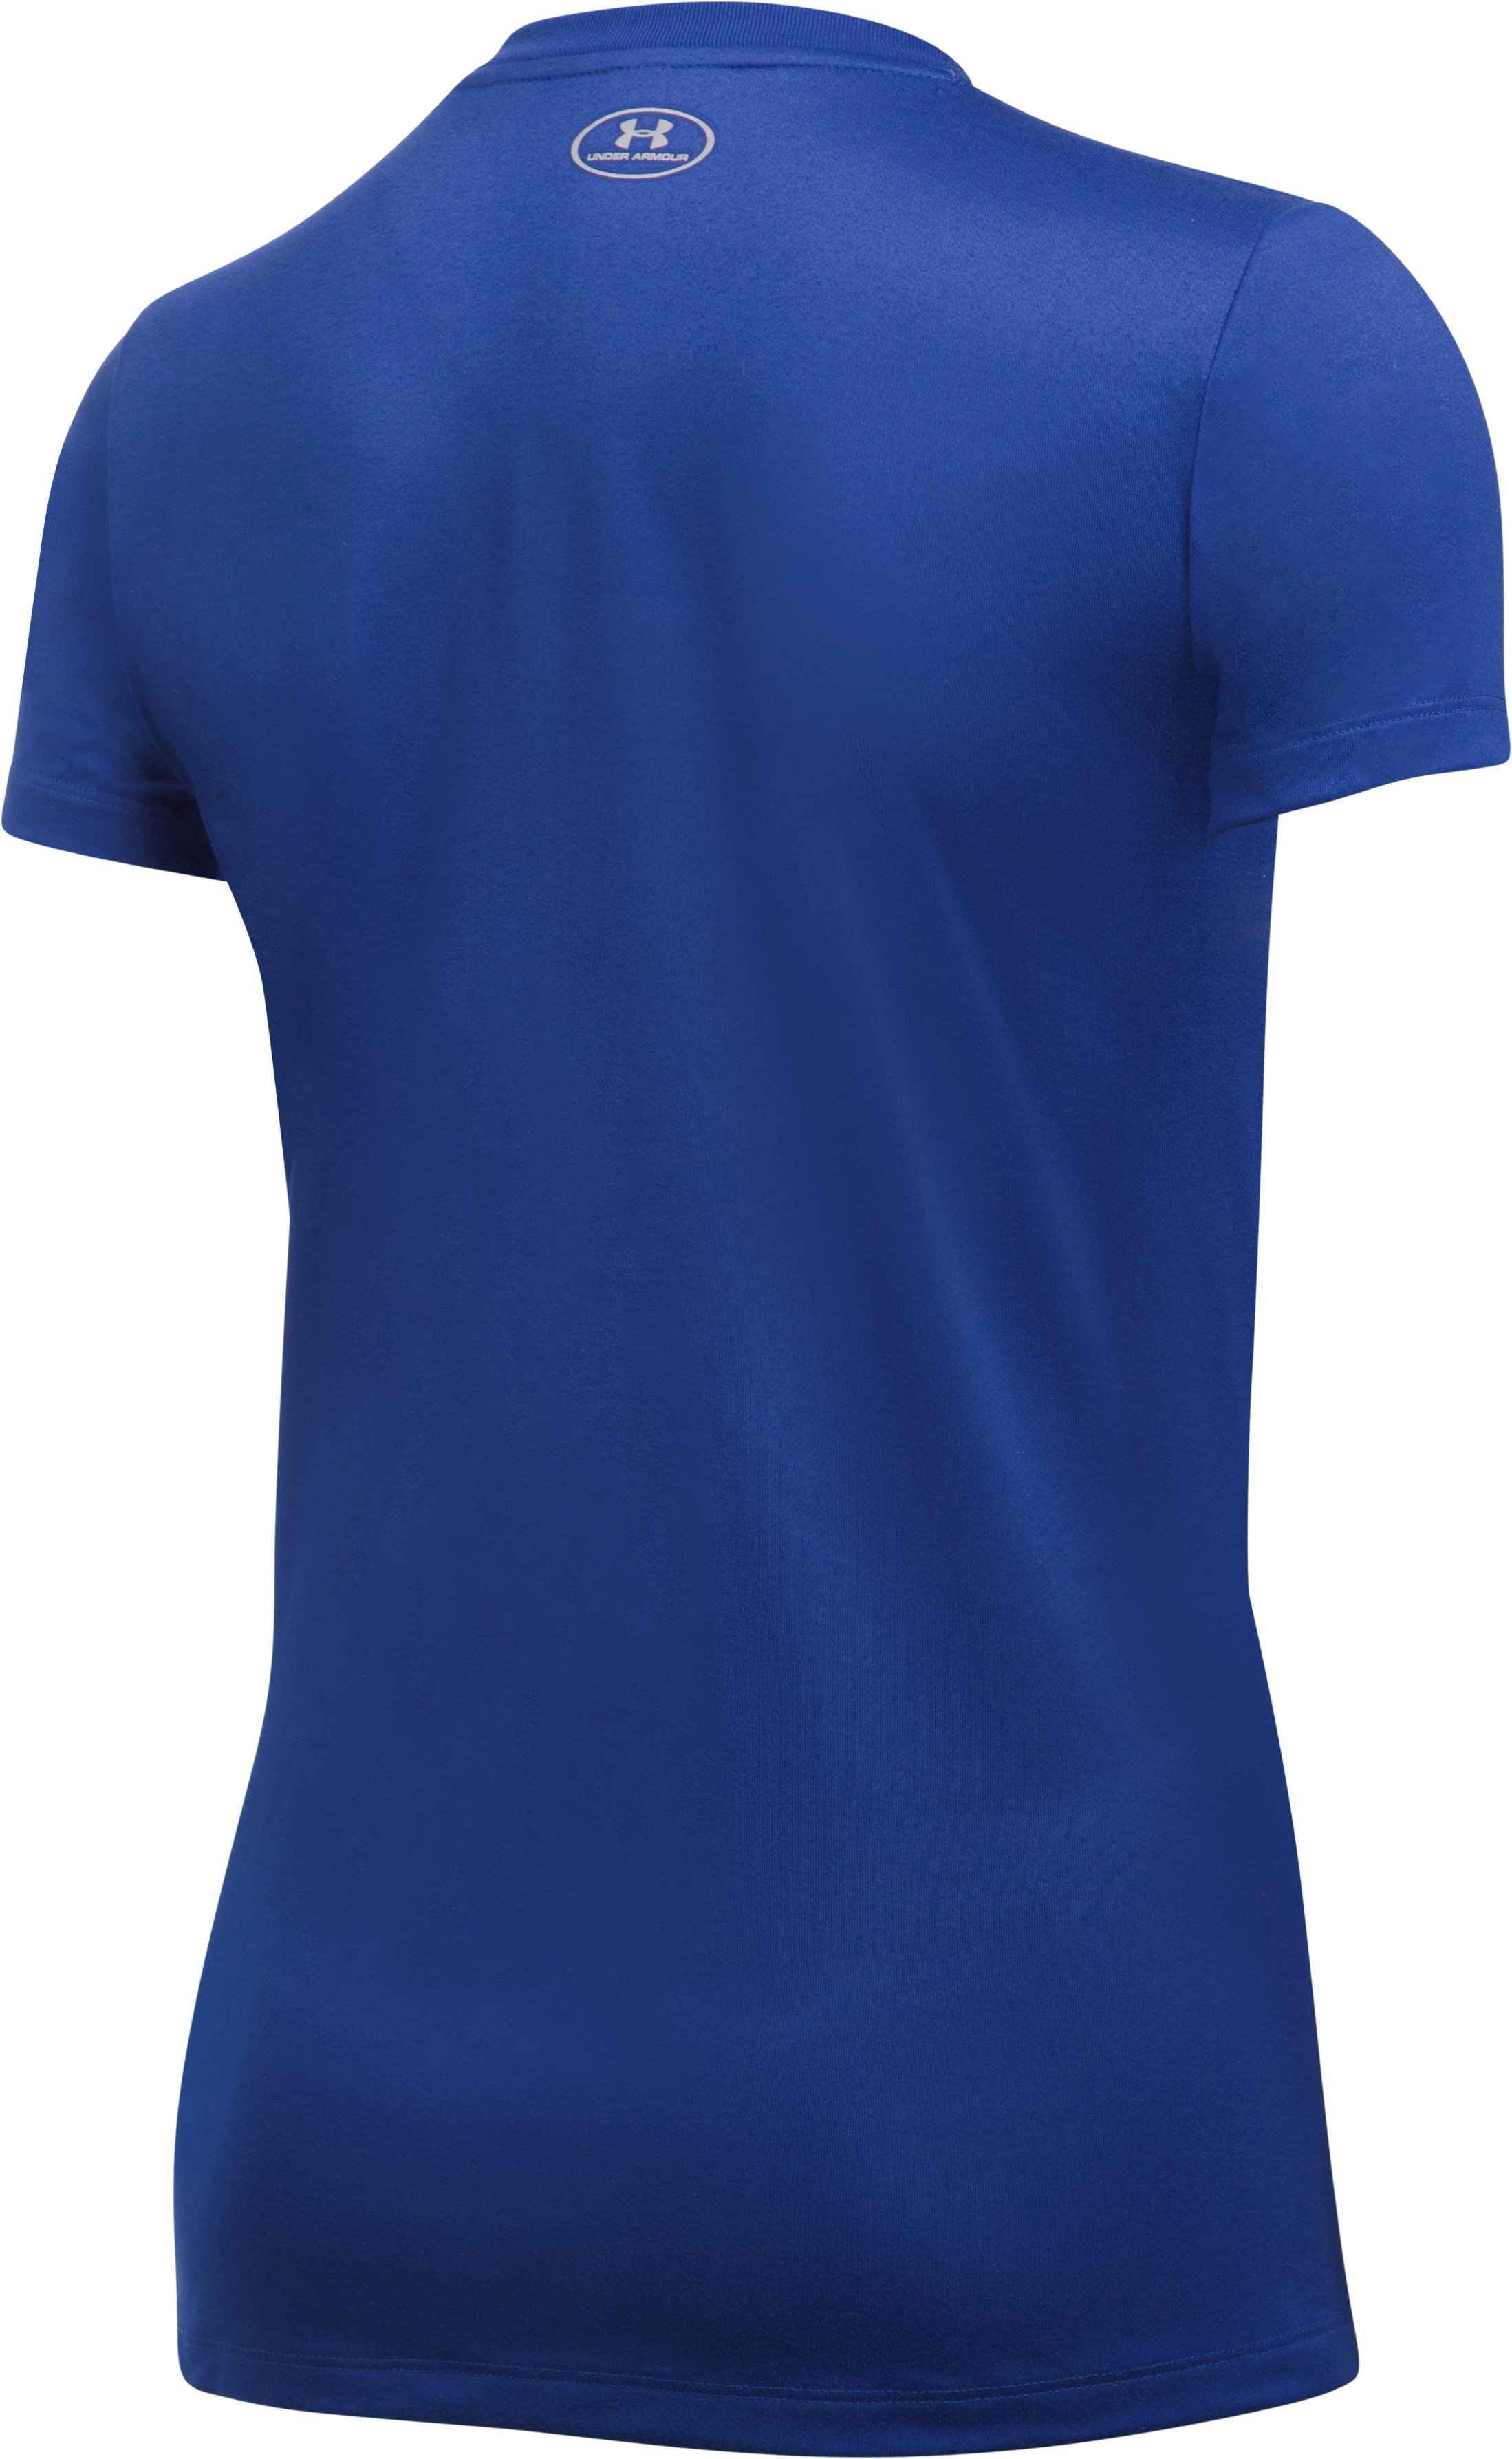 Women's Toronto Blue Jays UA Tech™ V-Neck T-Shirt, Royal, undefined